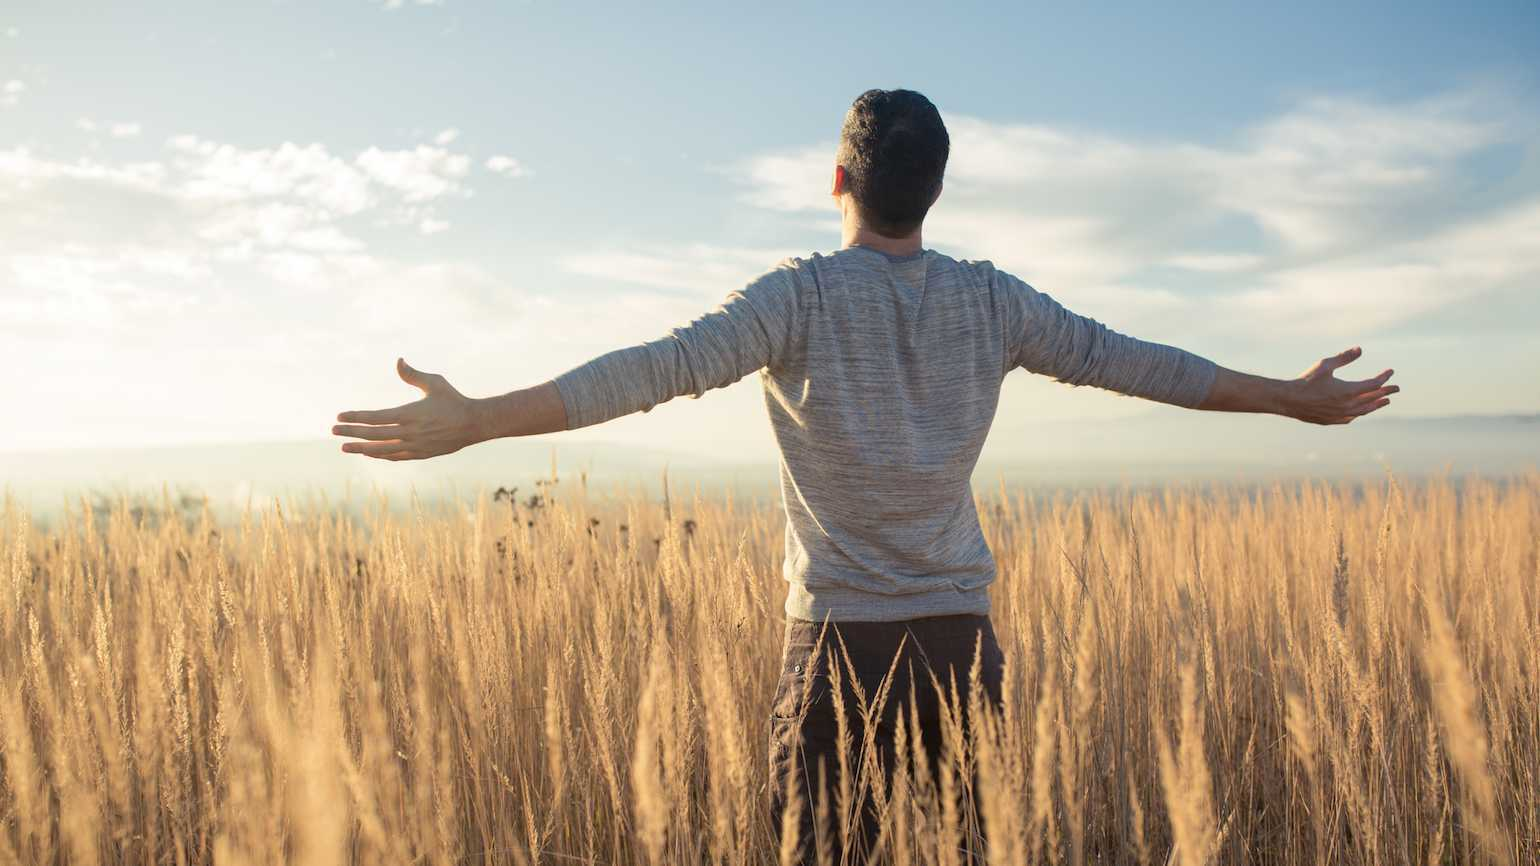 A man stands, arms outstretched, in a sun-drenched field